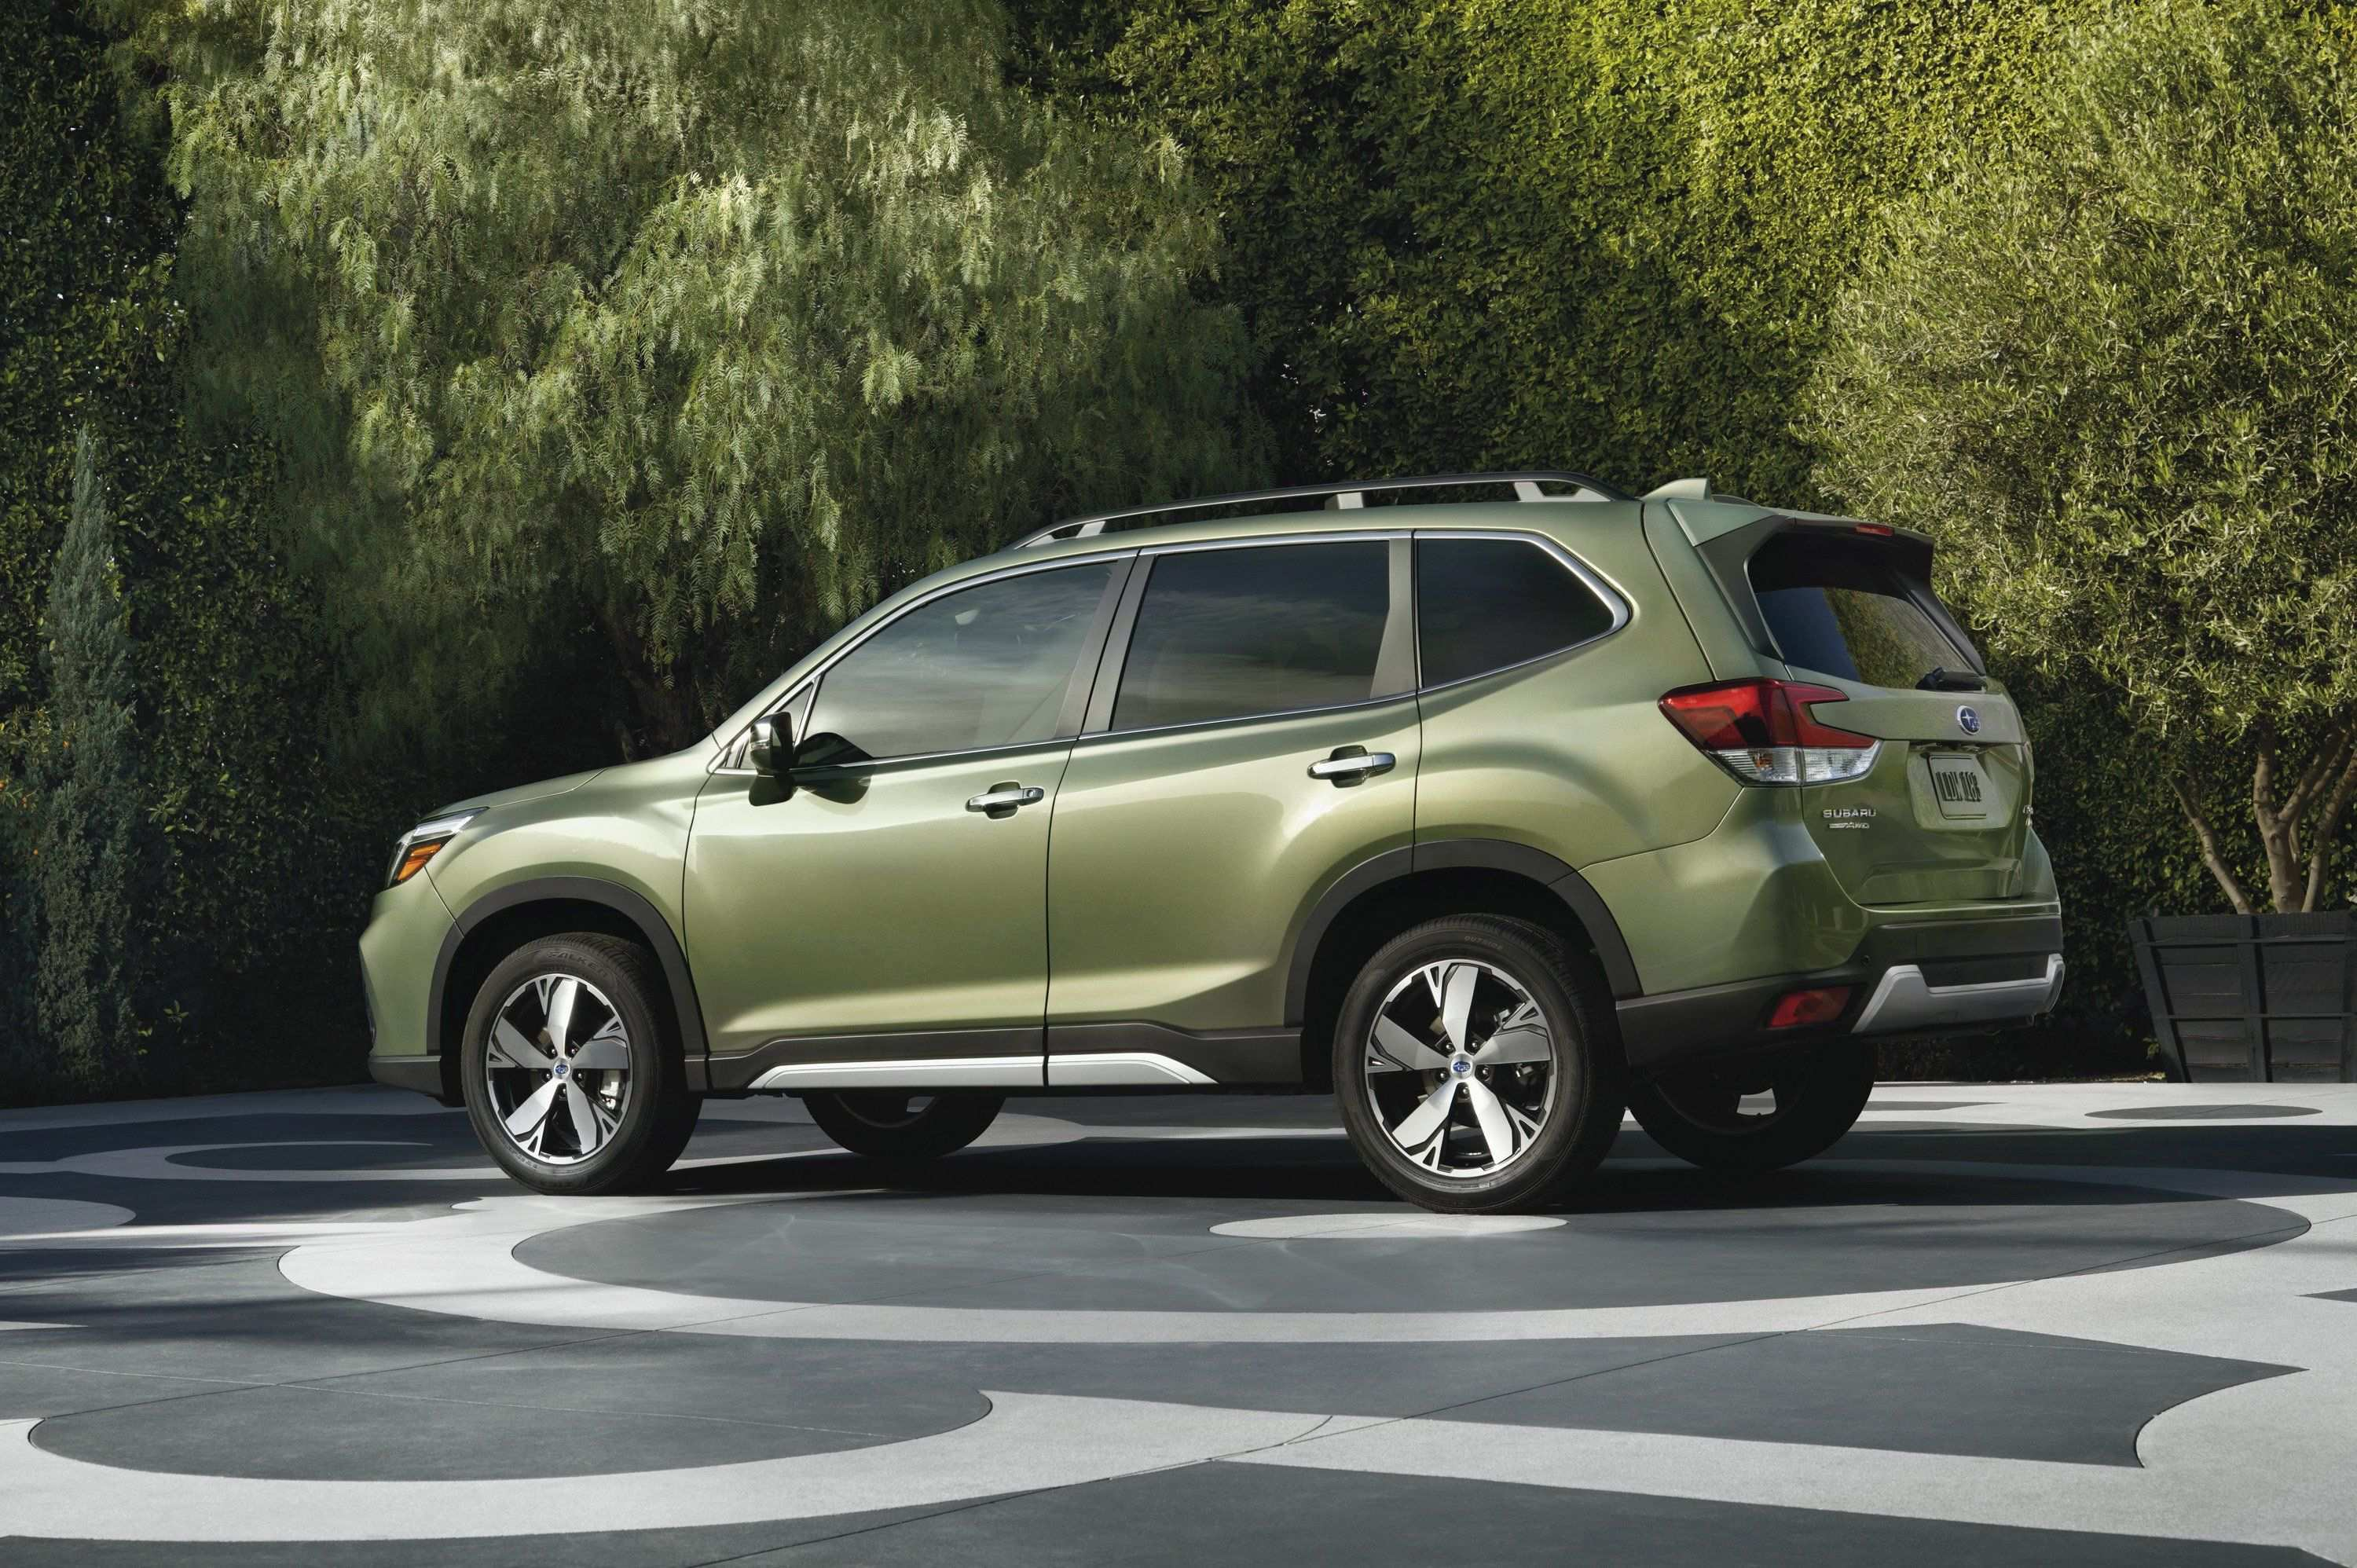 48 All New 2020 Subaru Forester Length Specs by 2020 Subaru Forester Length